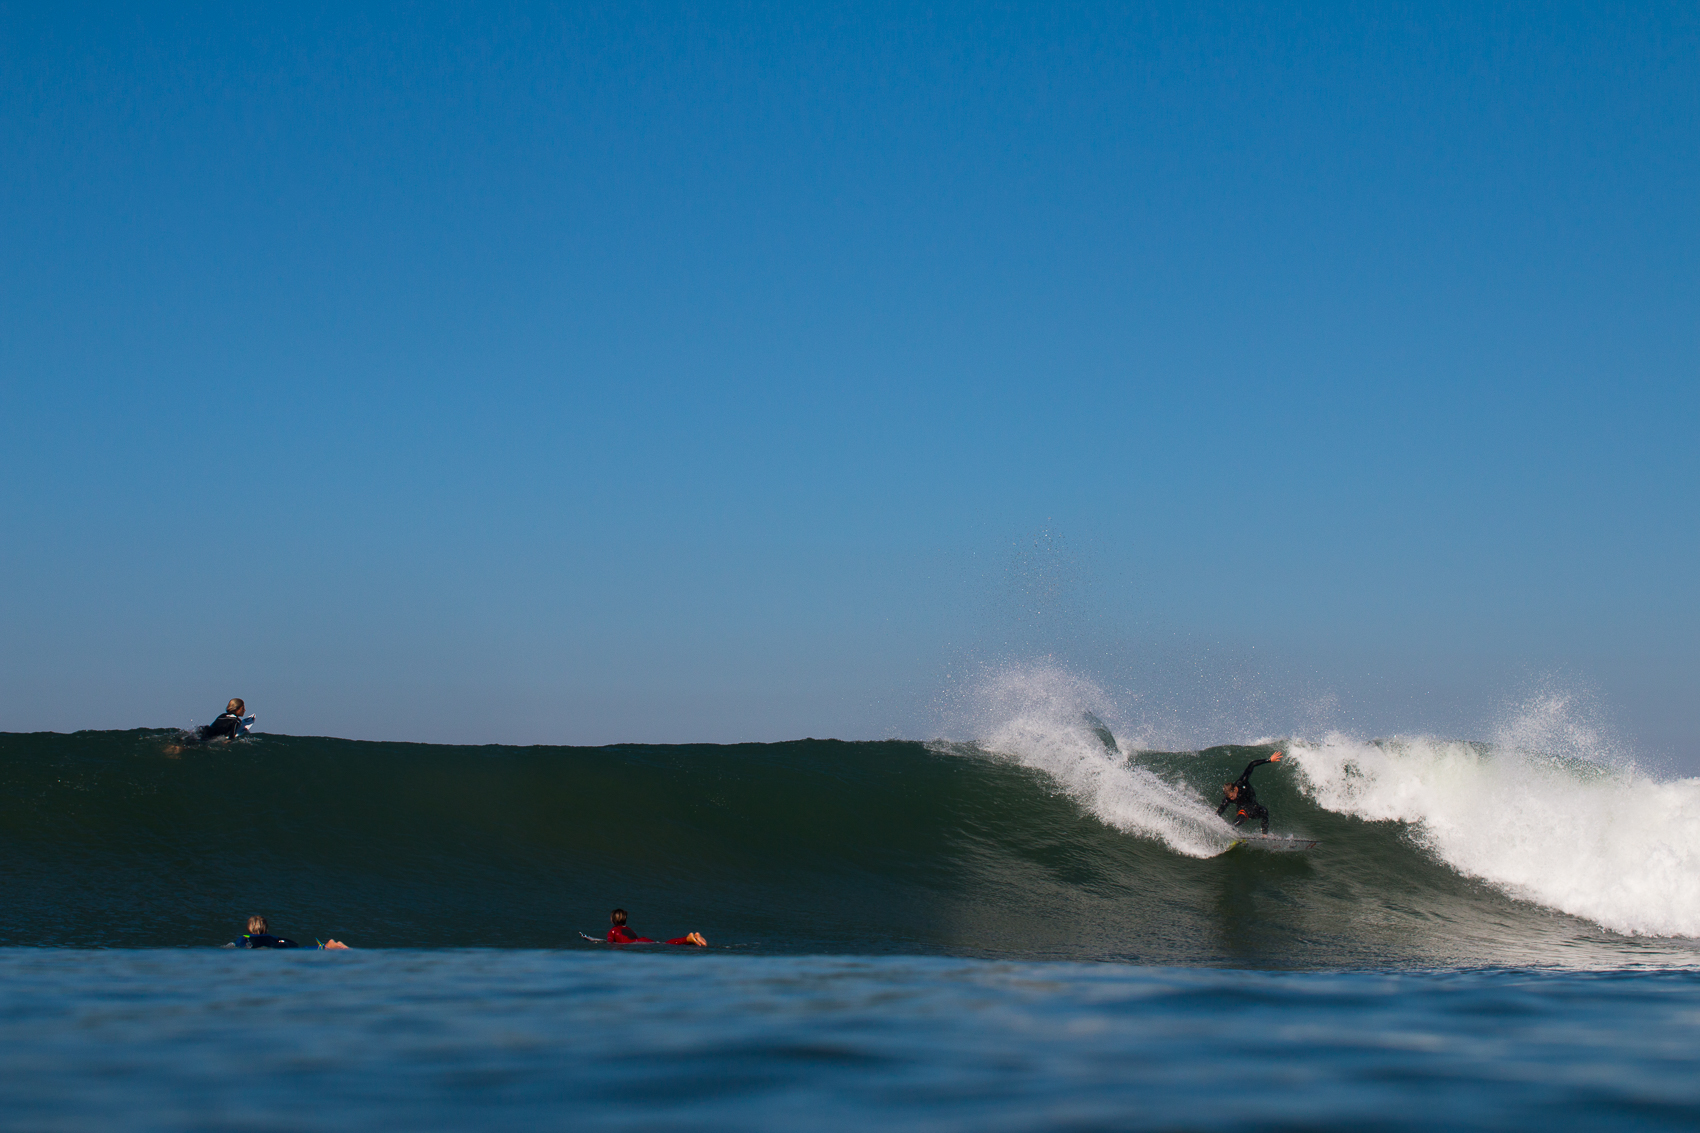 The groms watching Kolohe rip into a wave, dreams are born here.